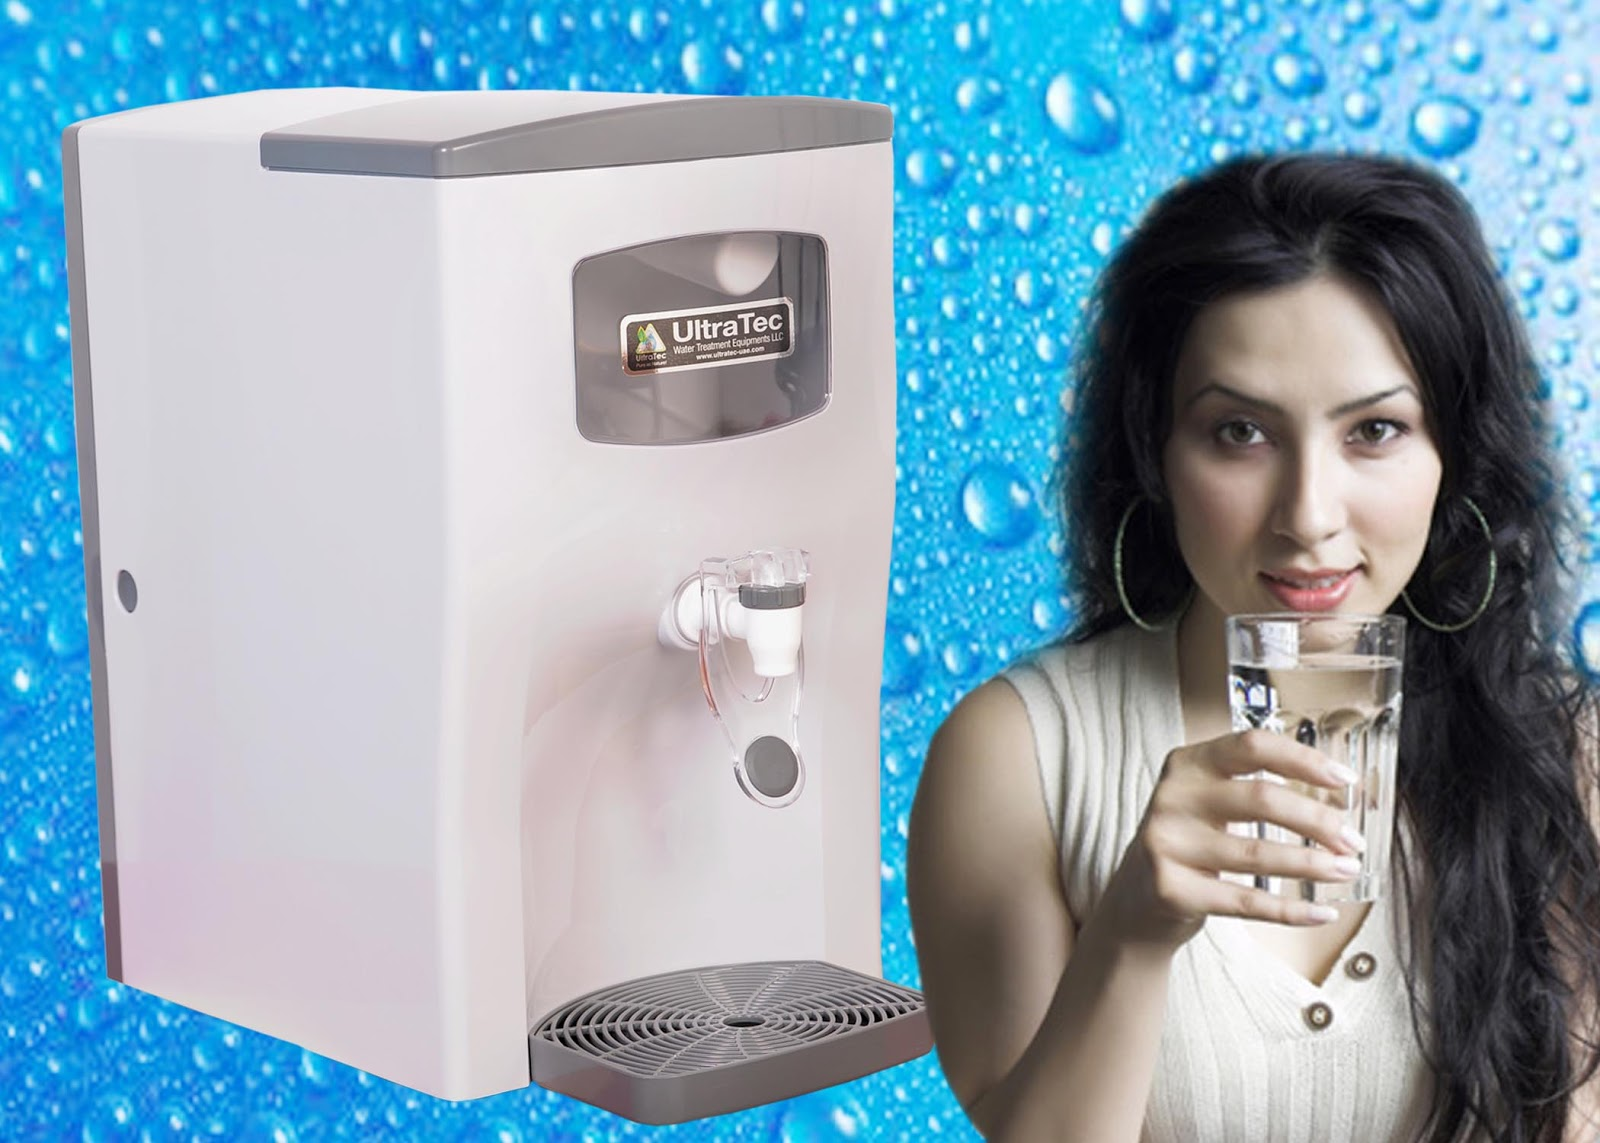 anti hair fall shower filter ultra tec newest countertop r o 2013 drinking water purifier. Black Bedroom Furniture Sets. Home Design Ideas